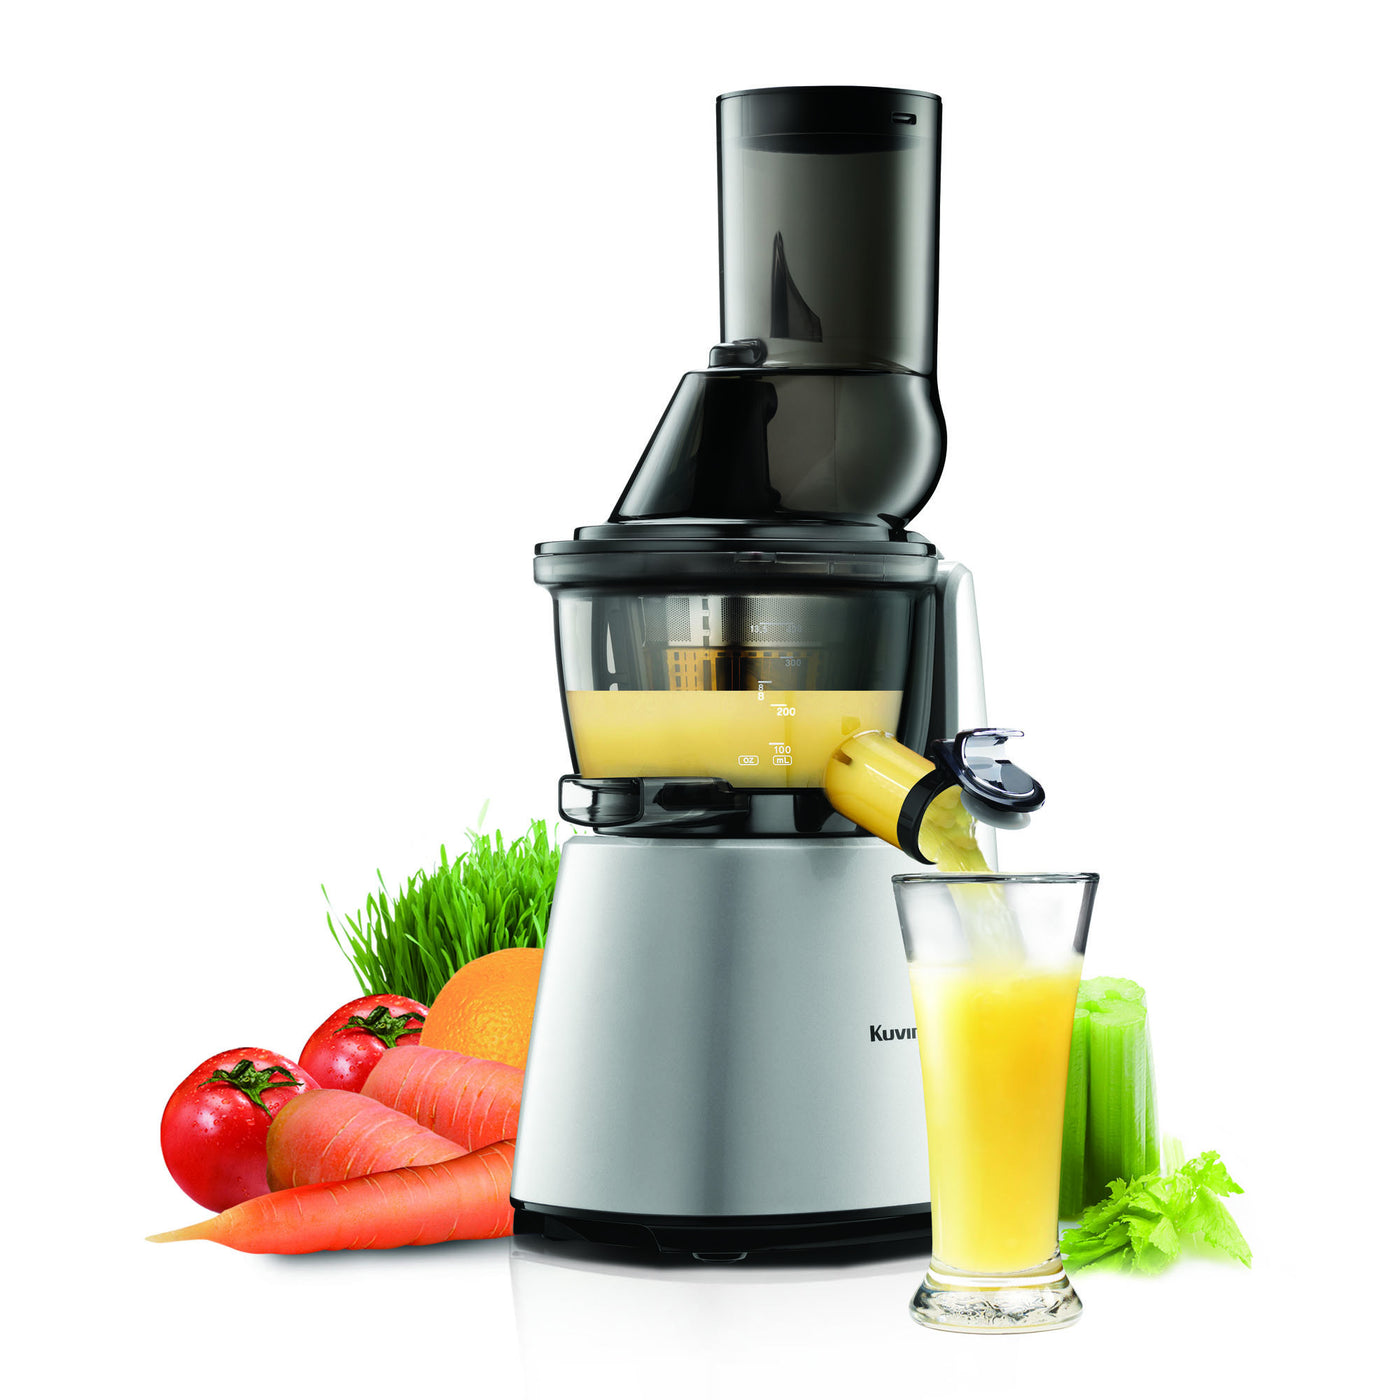 Kuvings Whole Slow Juicer Elite C7000 : Kuvings Elite Whole Slow Juicer C7000 Juicerville